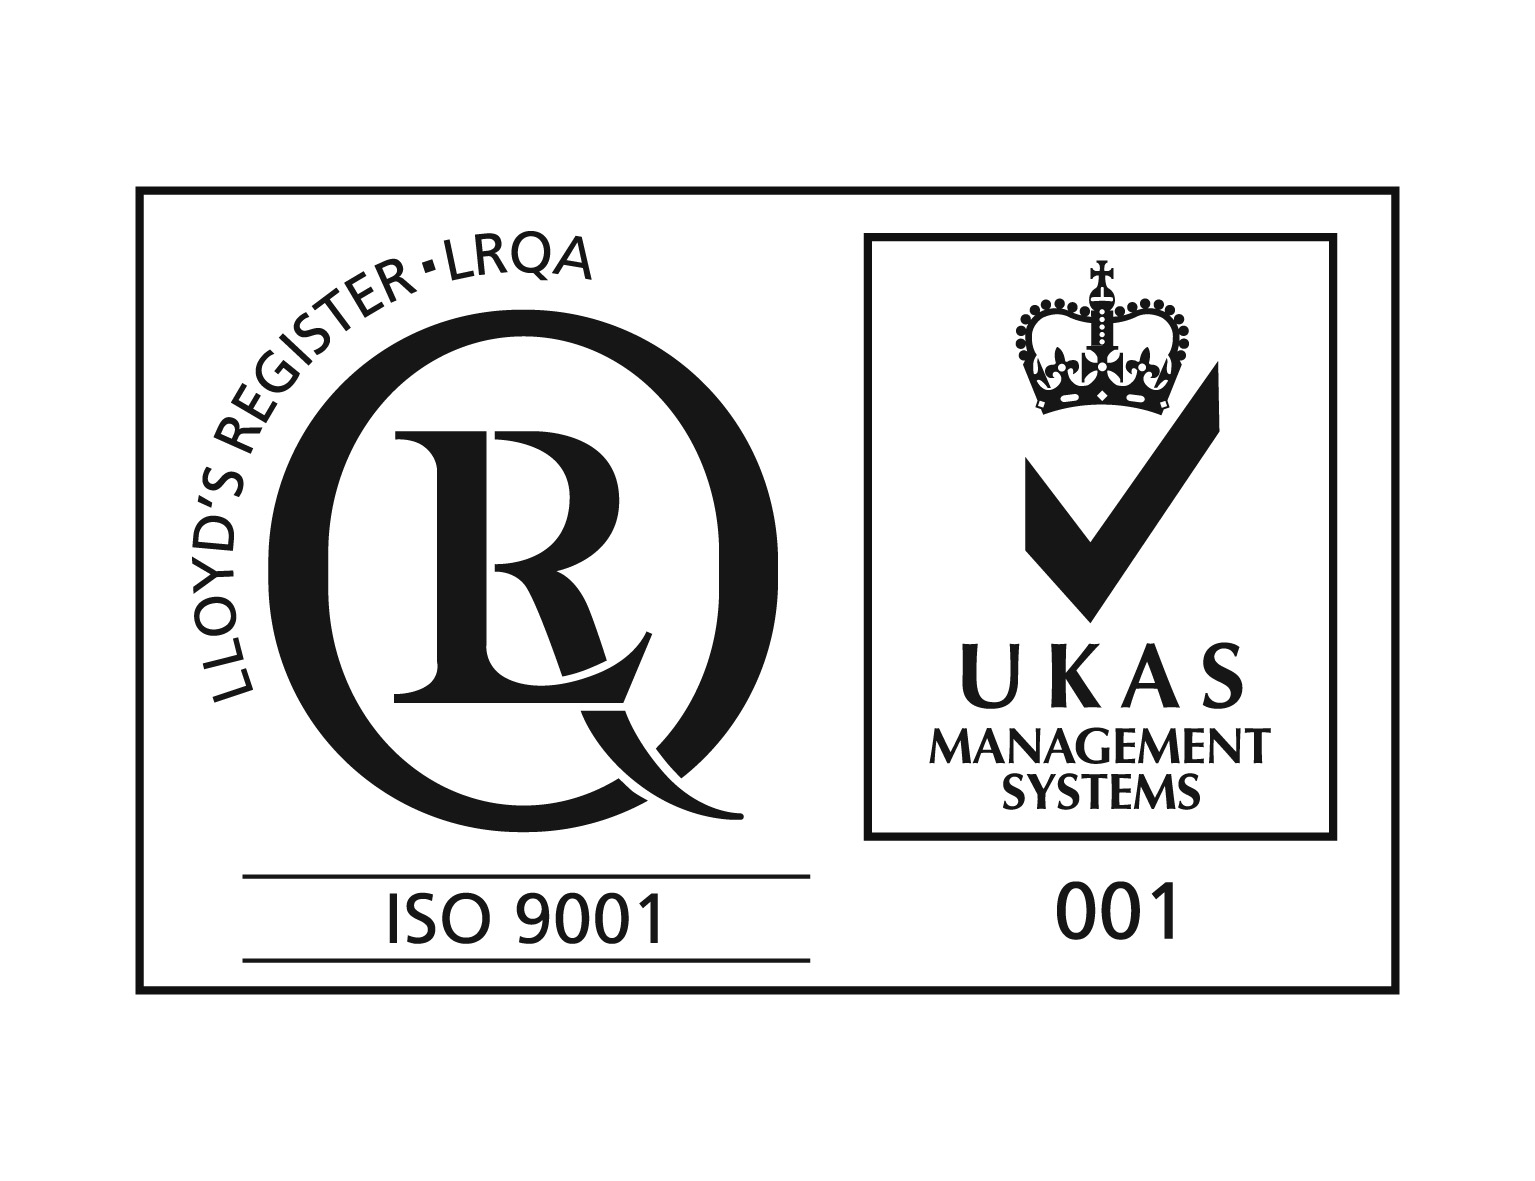 Lloyd's register quality assurance - ISO9001